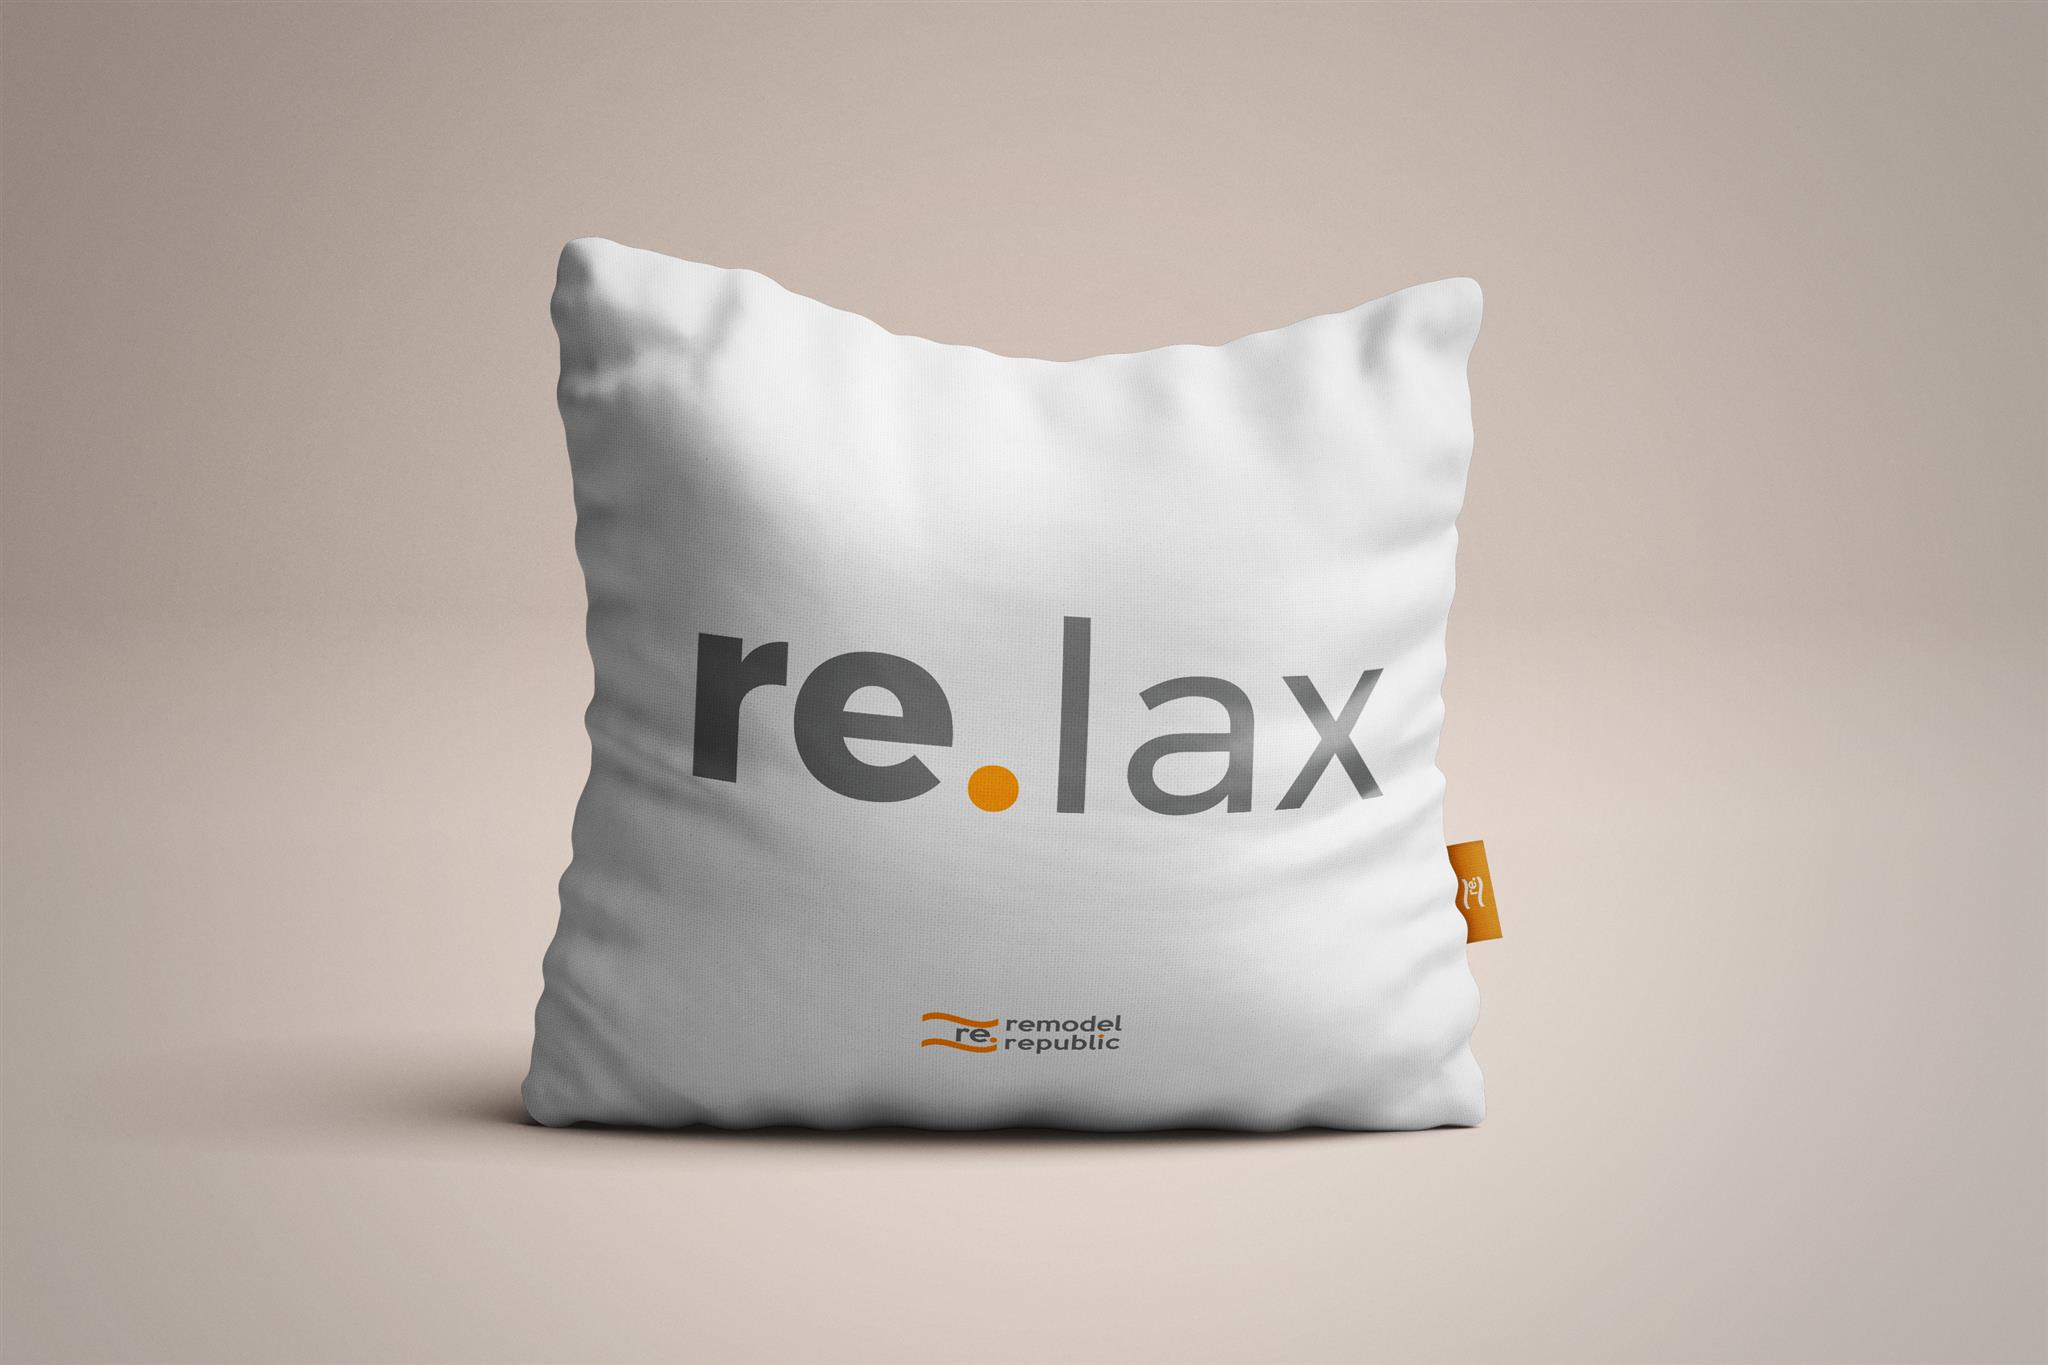 Relax-with-Remodel-Republic